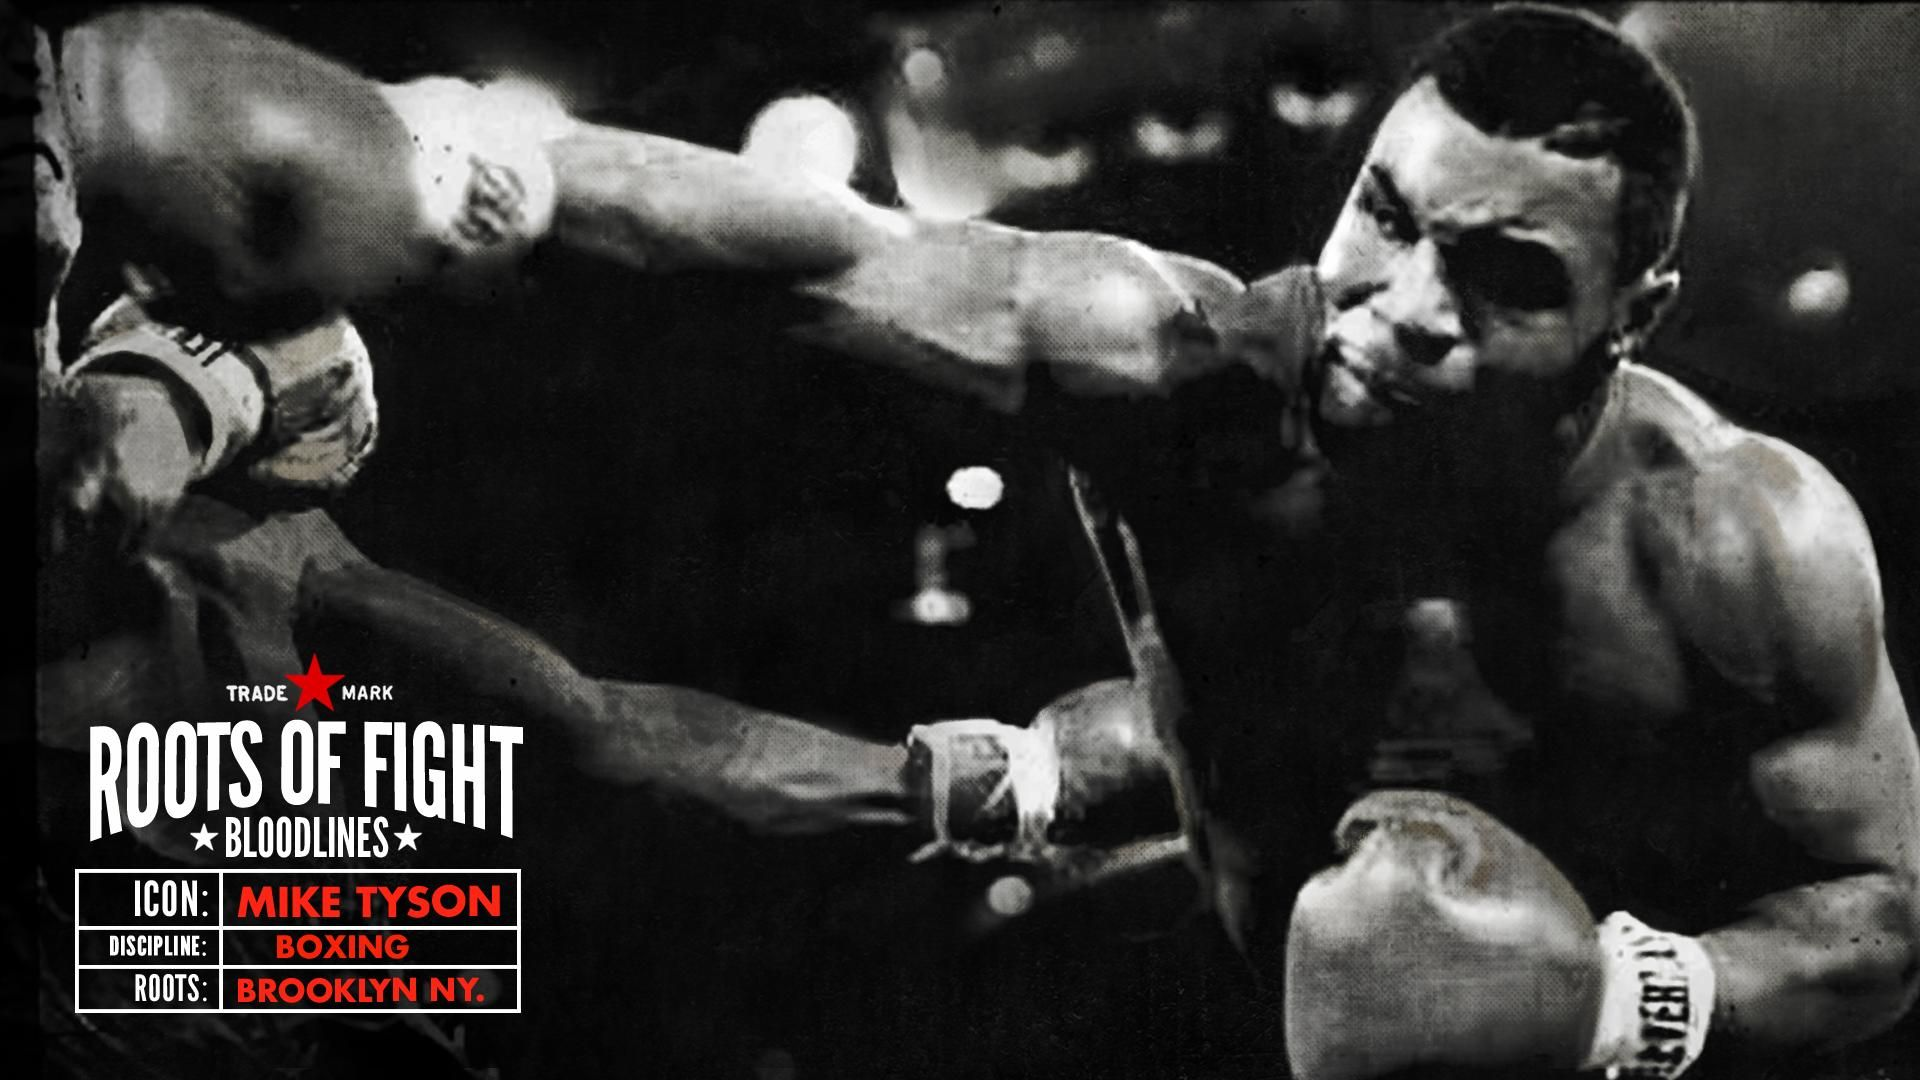 Pin On Fight Tat Images